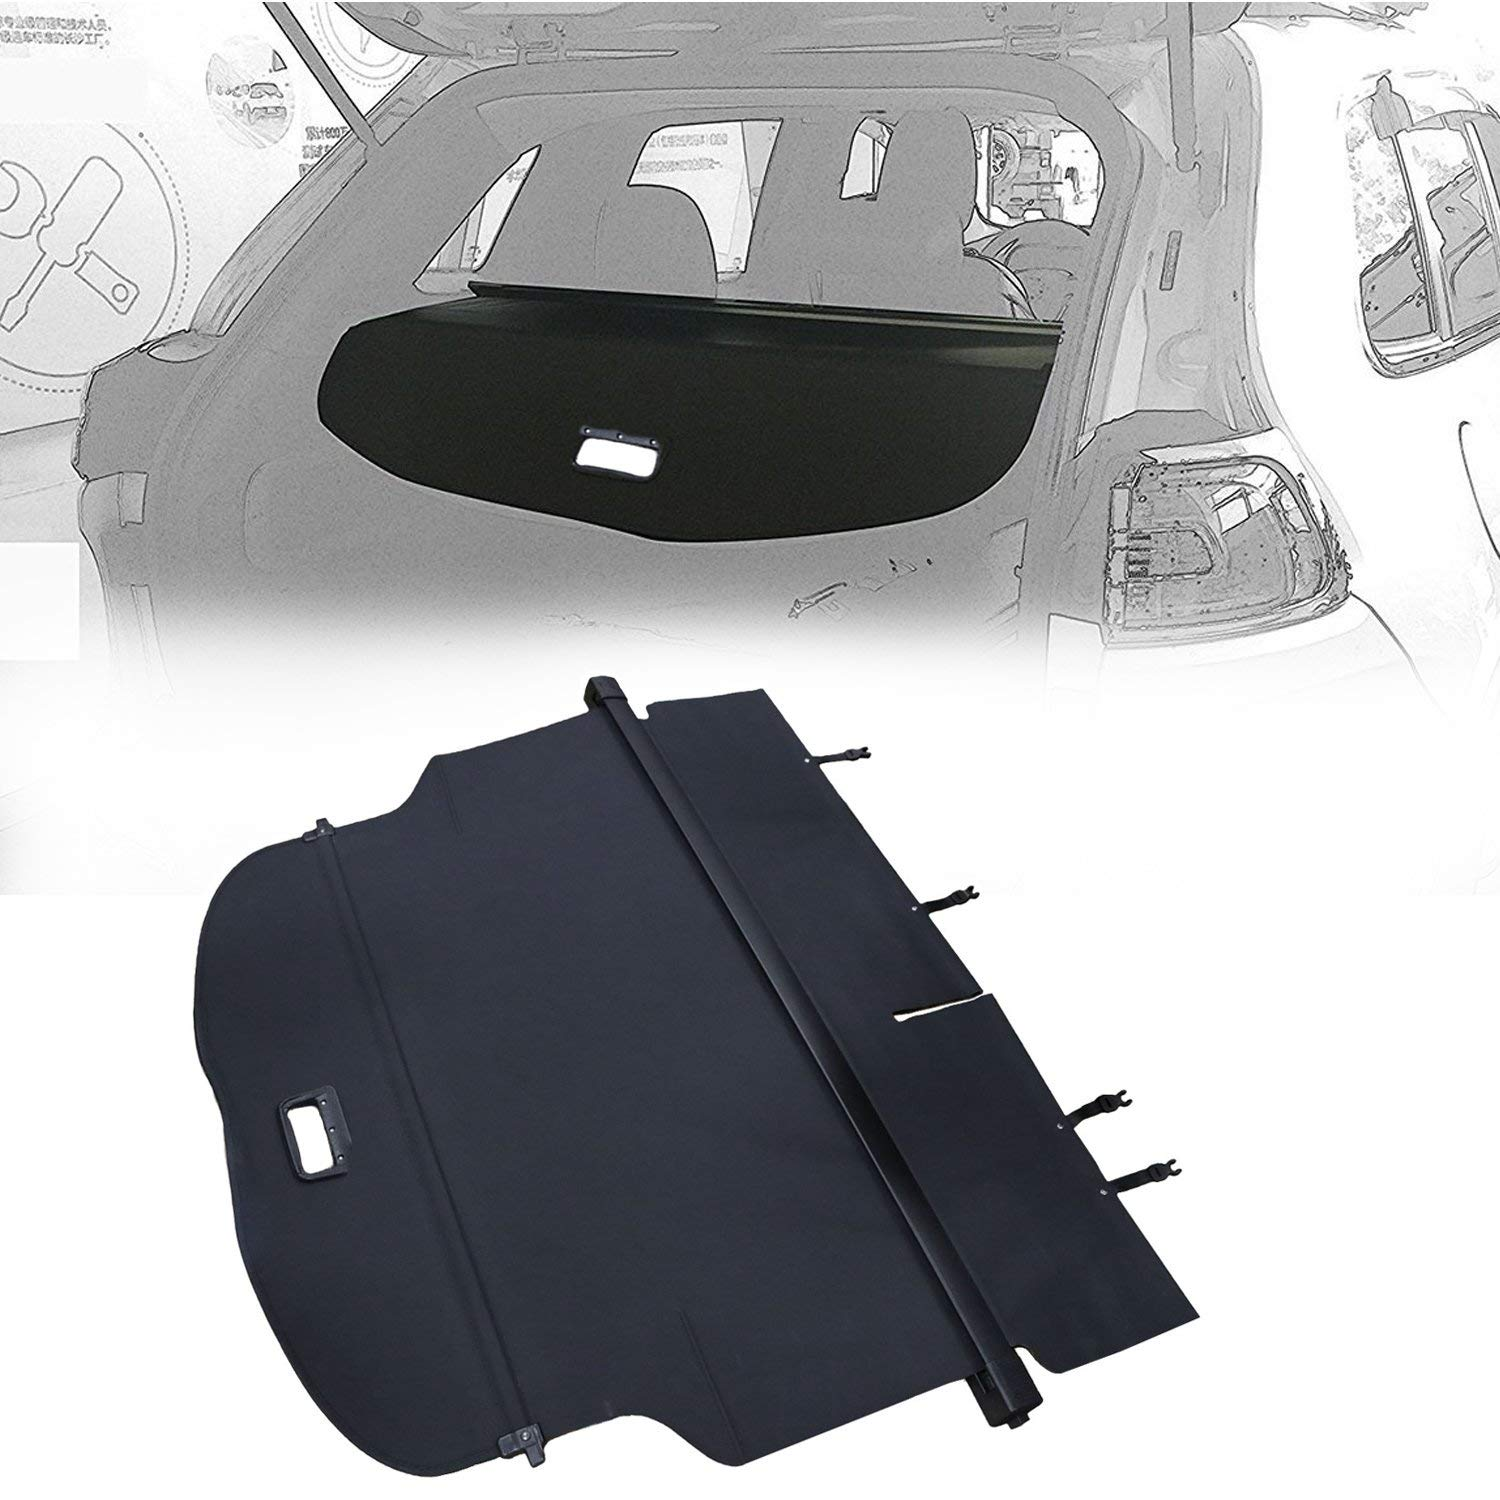 Black,Grand Cherokee Opall Retractable Rear Trunk Cargo Luggage Security Shade Cover Shield for 2011-2018 Jeep Grand Cherokee